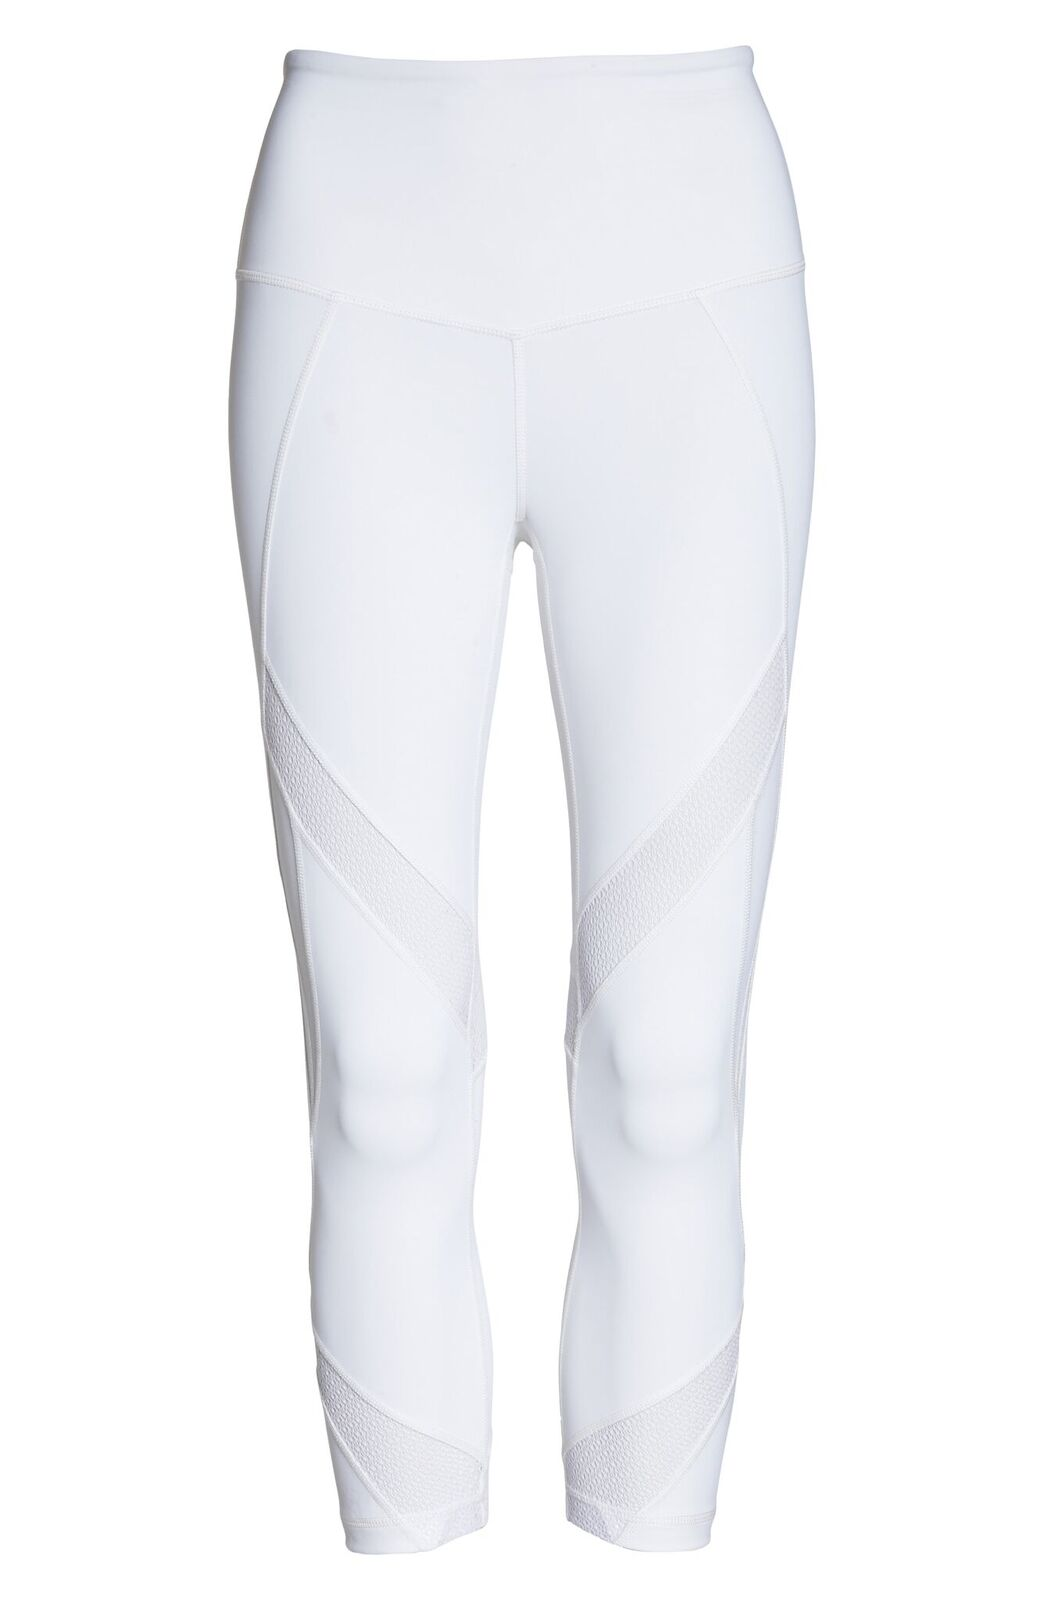 In Dreams High Waist Leggings - $69.{&nbsp;}Looking for a jumpstart to your workout wardrobe? Zella, a Nordstrom brand, has you covered. Find more info and buy online at shop.nordstrom.com/c/all-zella. (Image: Nordstrom)<p></p><p></p><p></p>